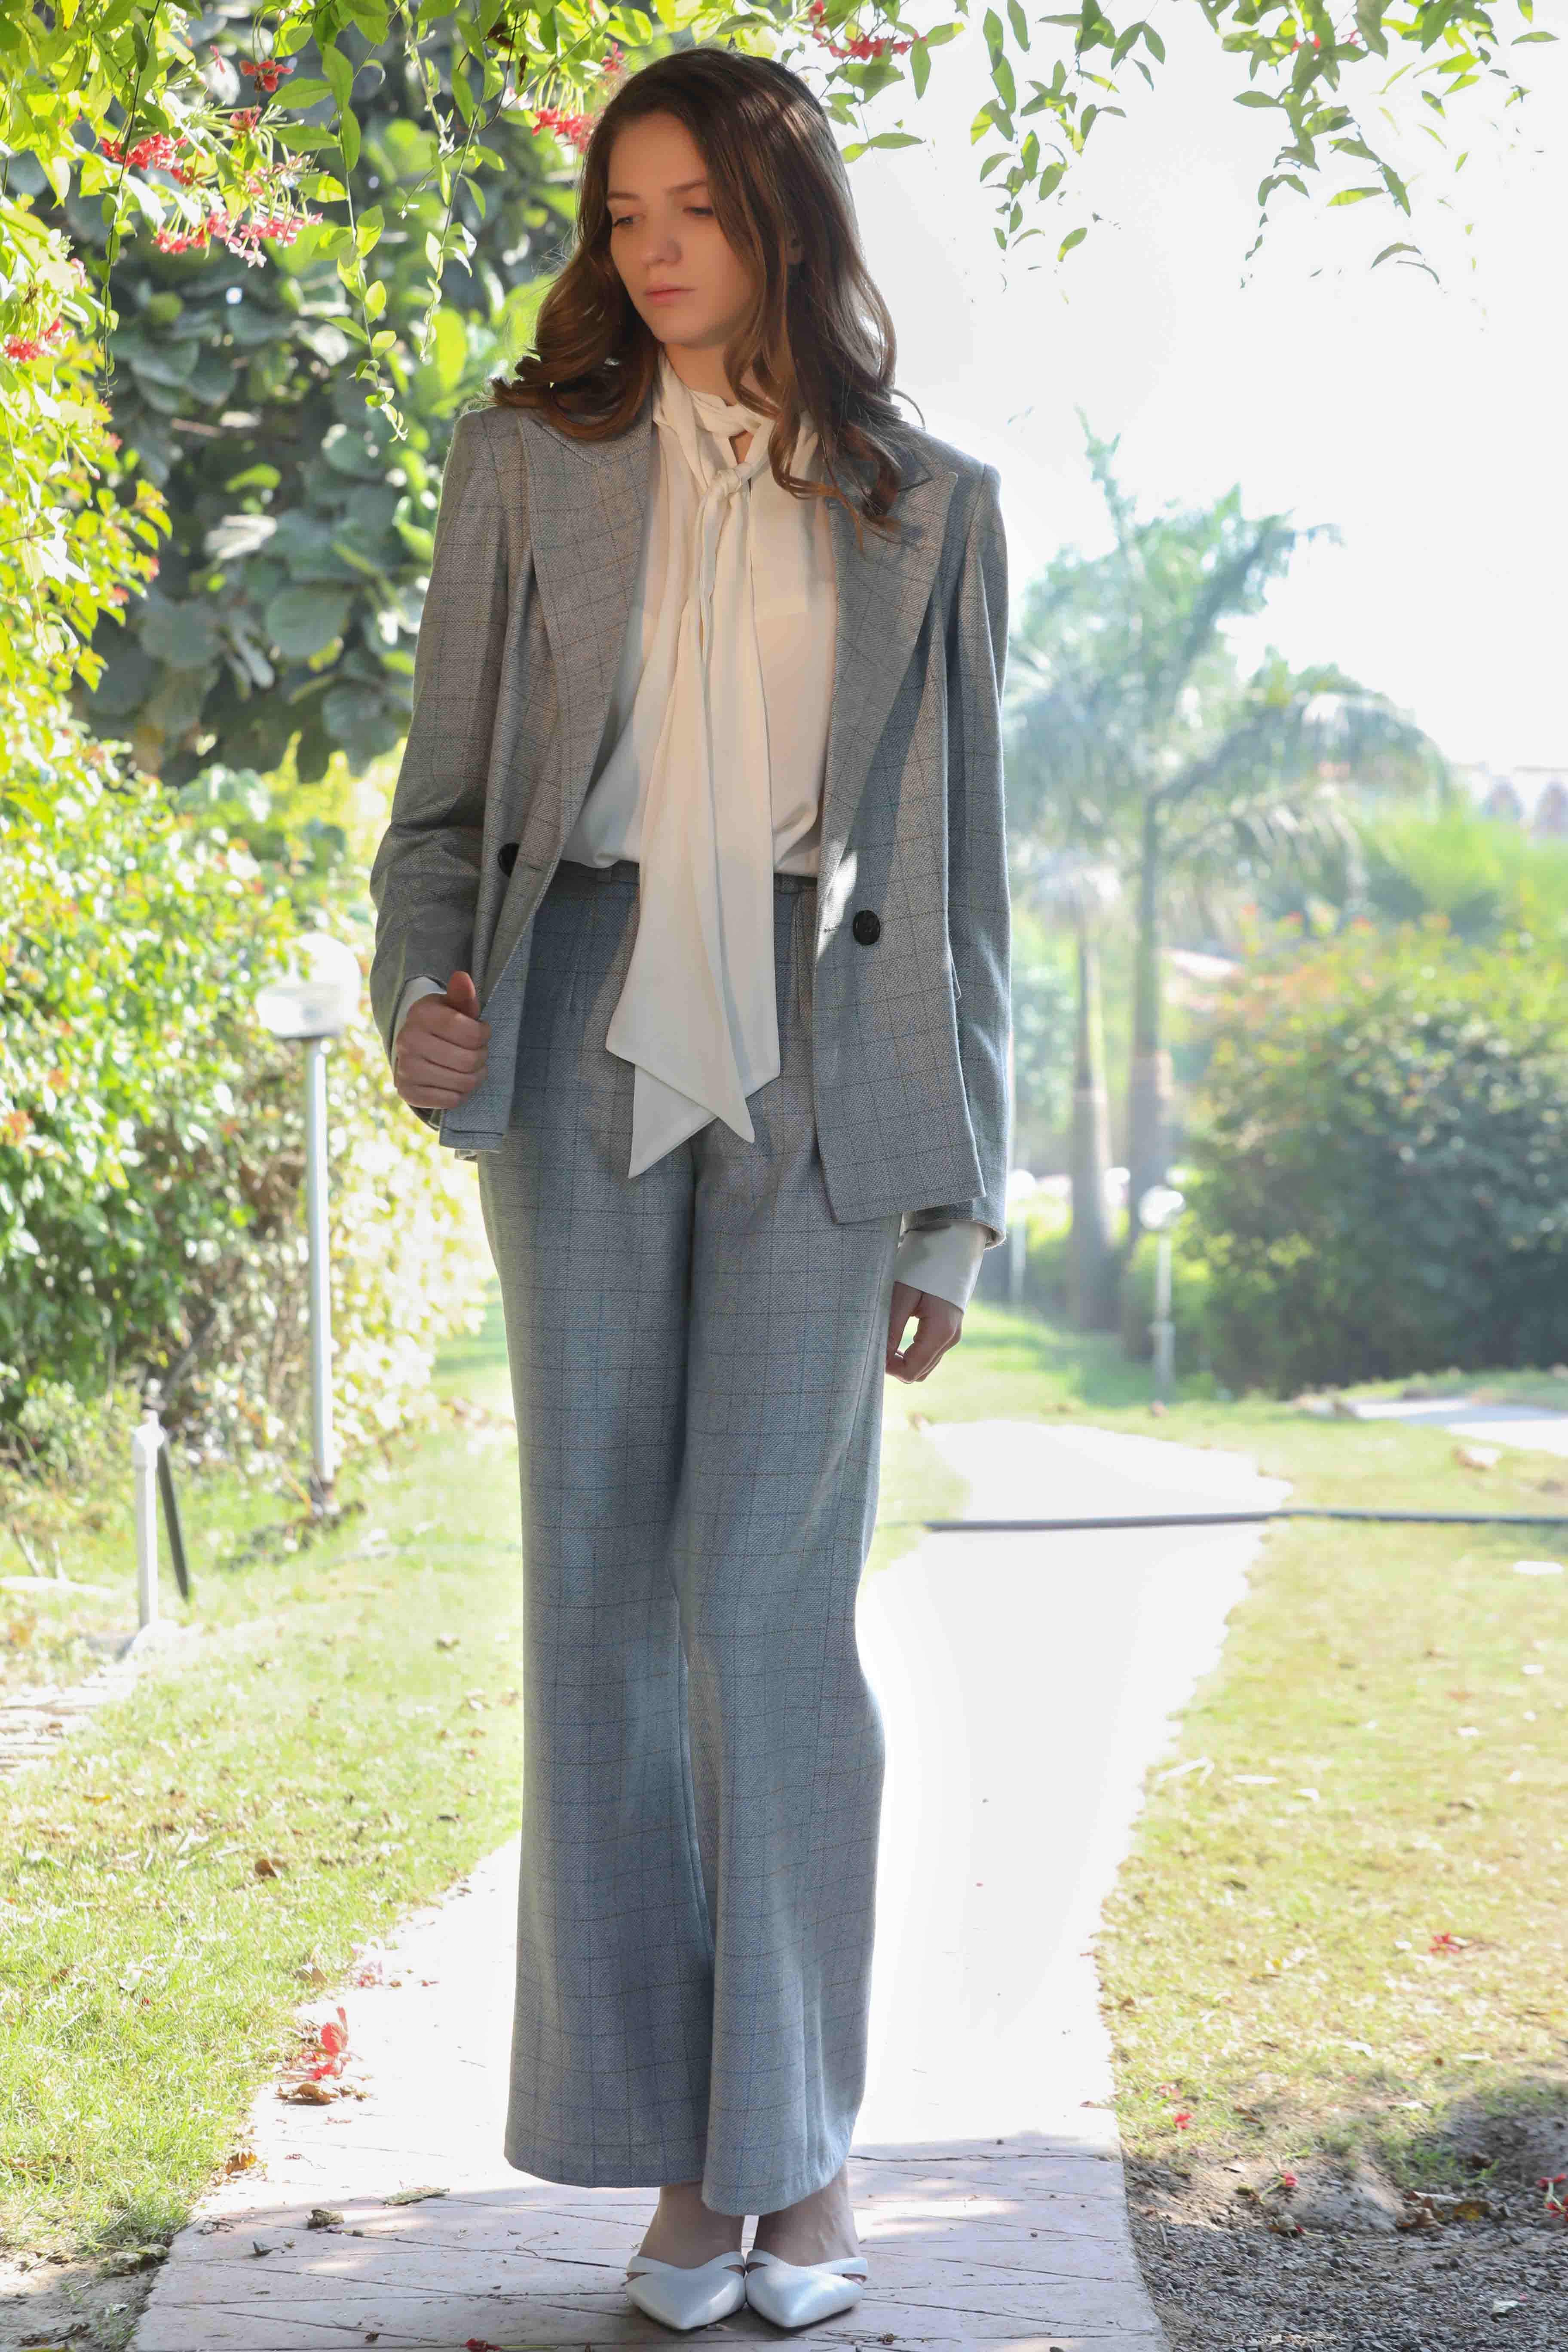 Label Meadow's, Powder blue tweed pants